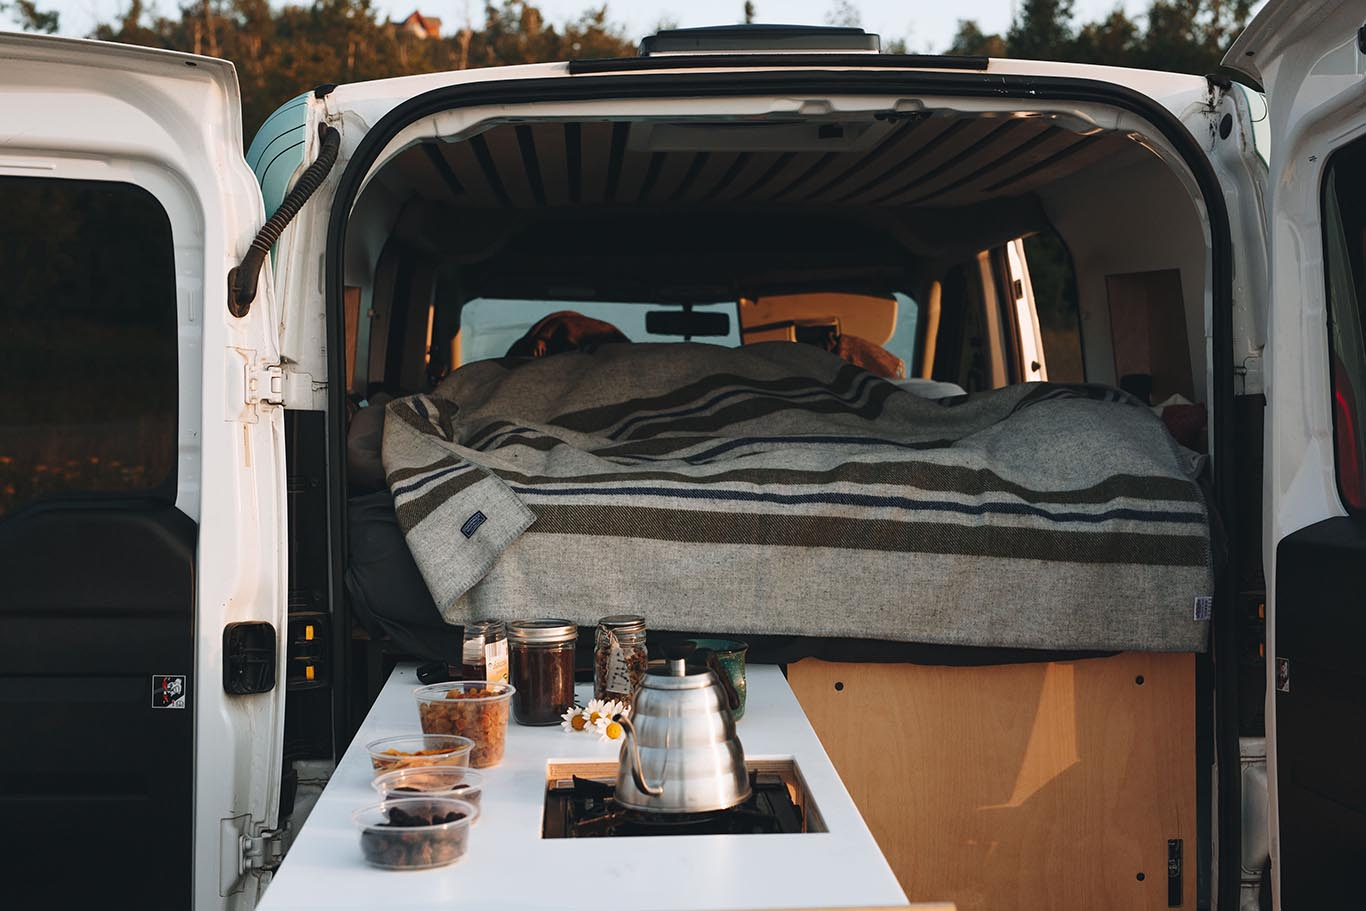 The Best Rental Van Companies - Contravans Car Camping Systems